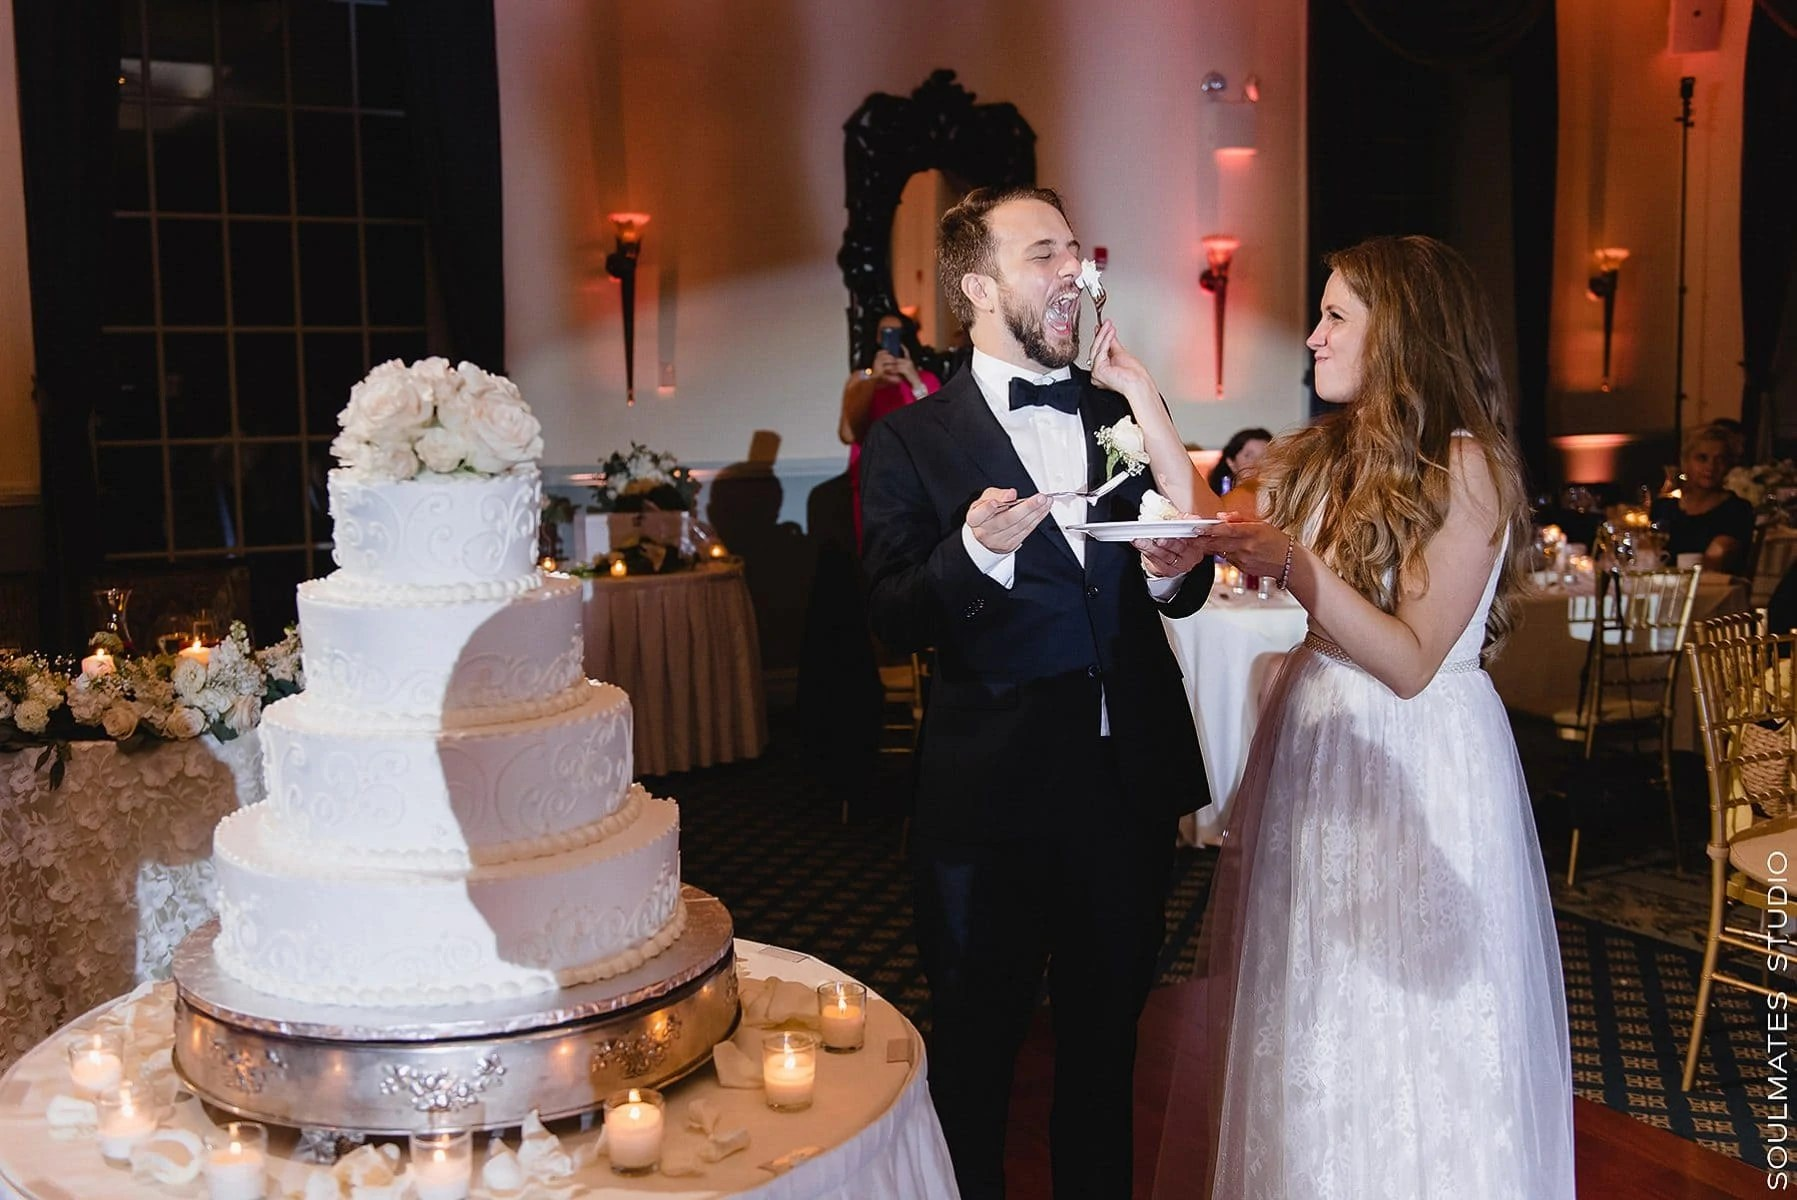 Funny Cake Cutting Moment